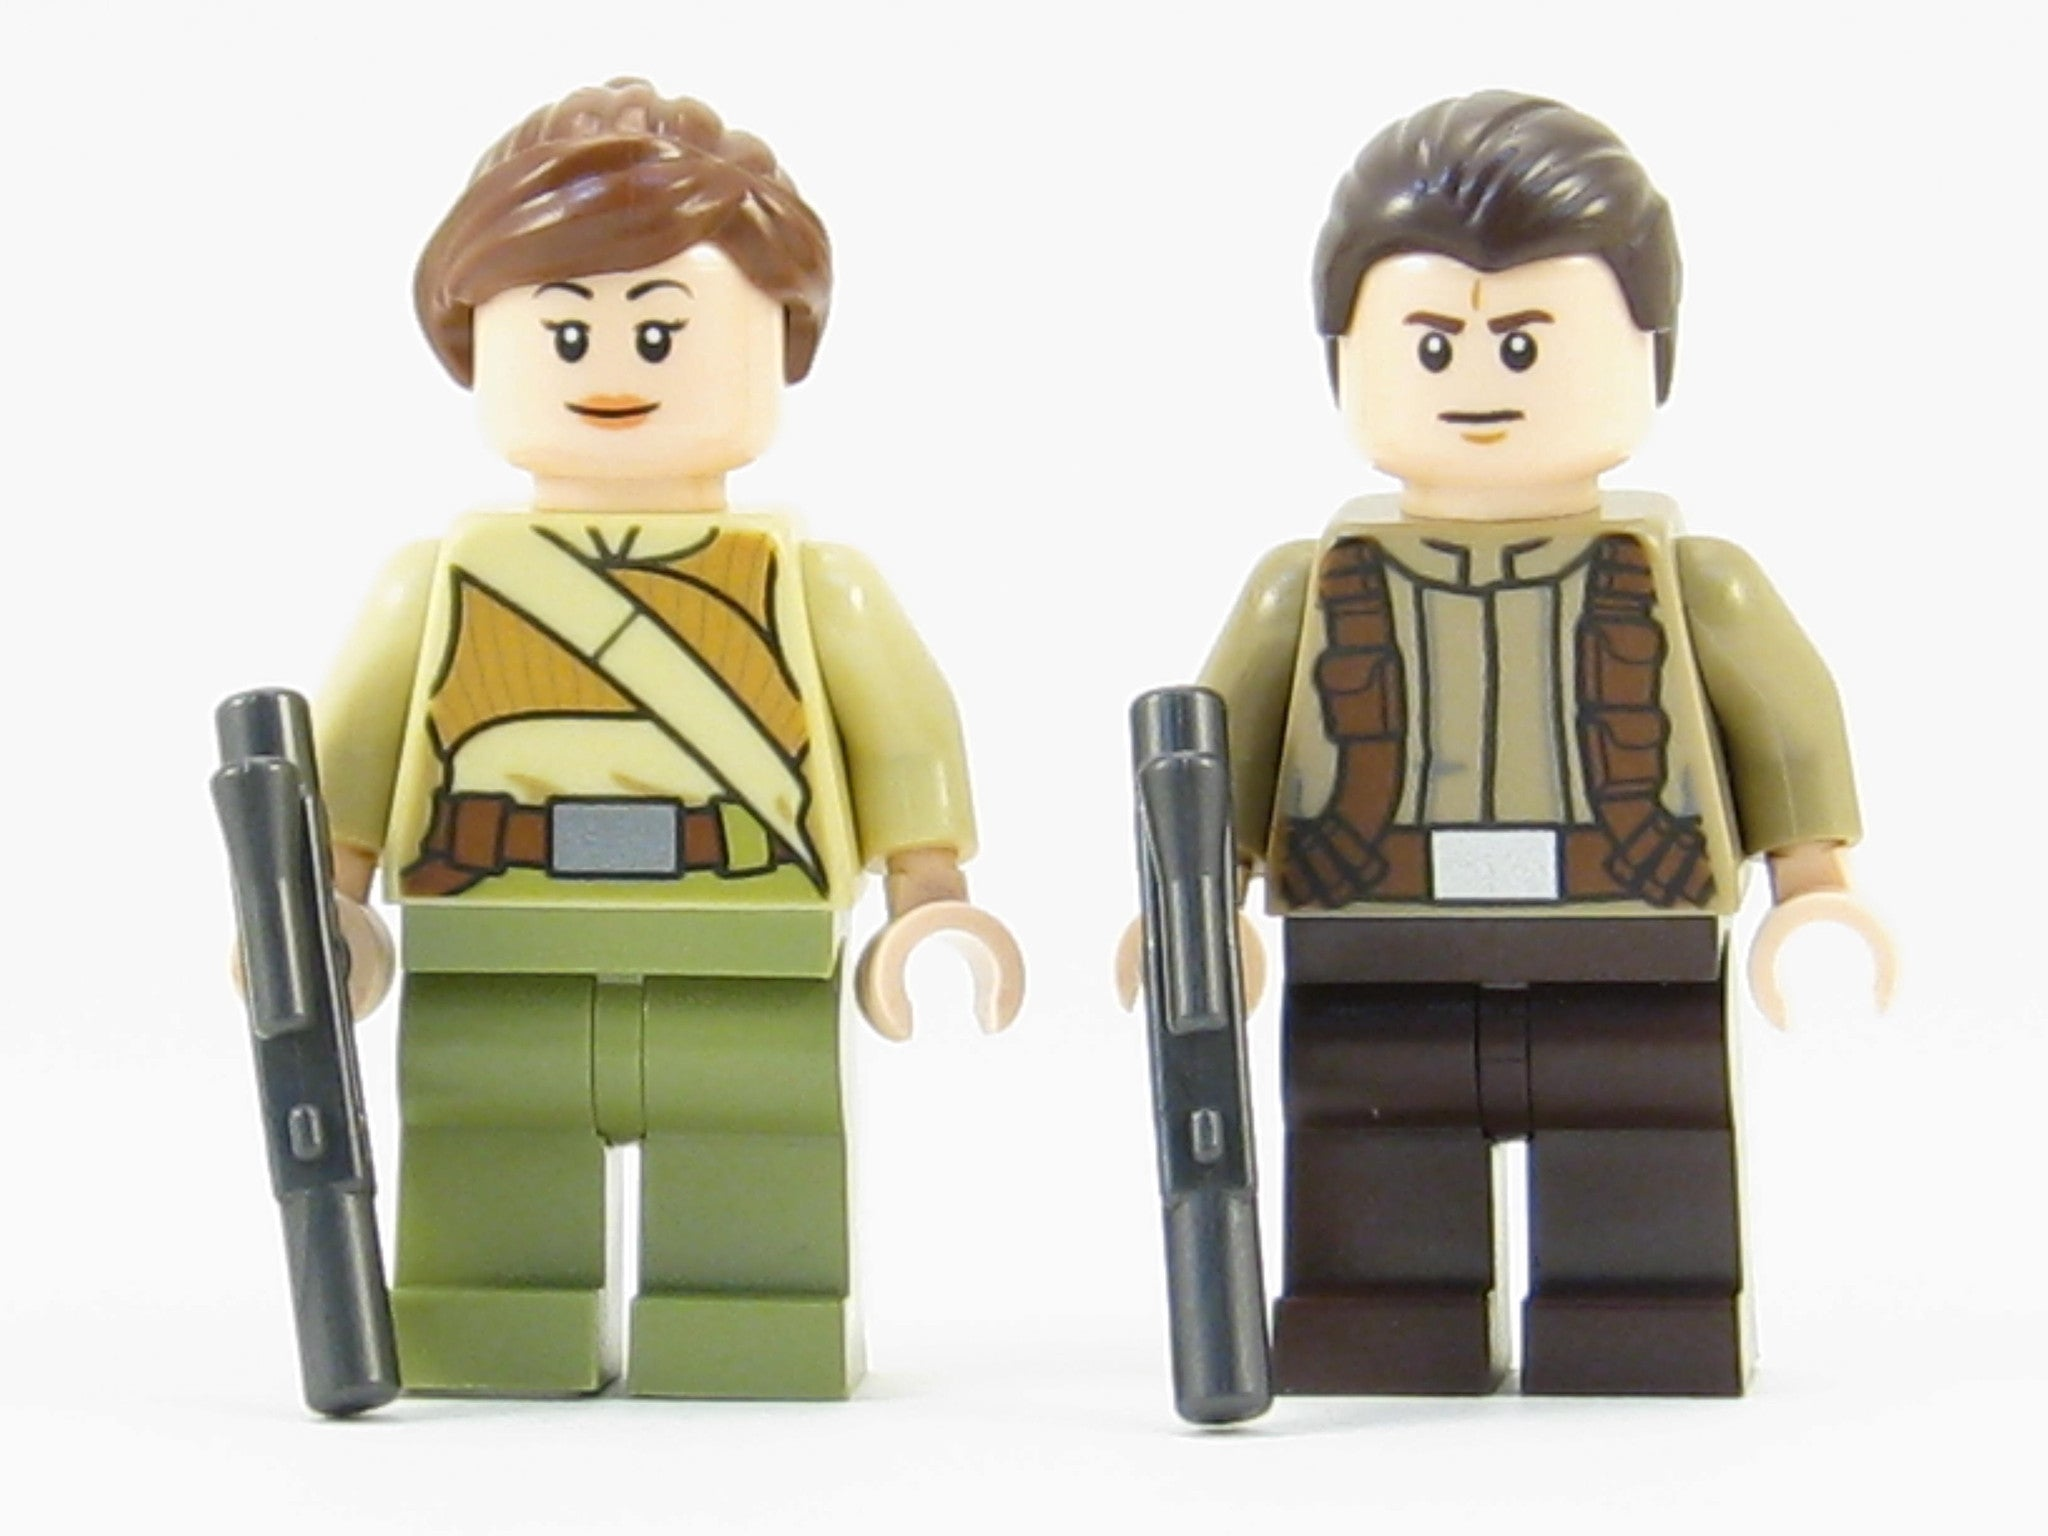 LEGO Star Wars Force Awakens Minifigures Lot of 20 Resistance Soldier Ep. 7 Mini